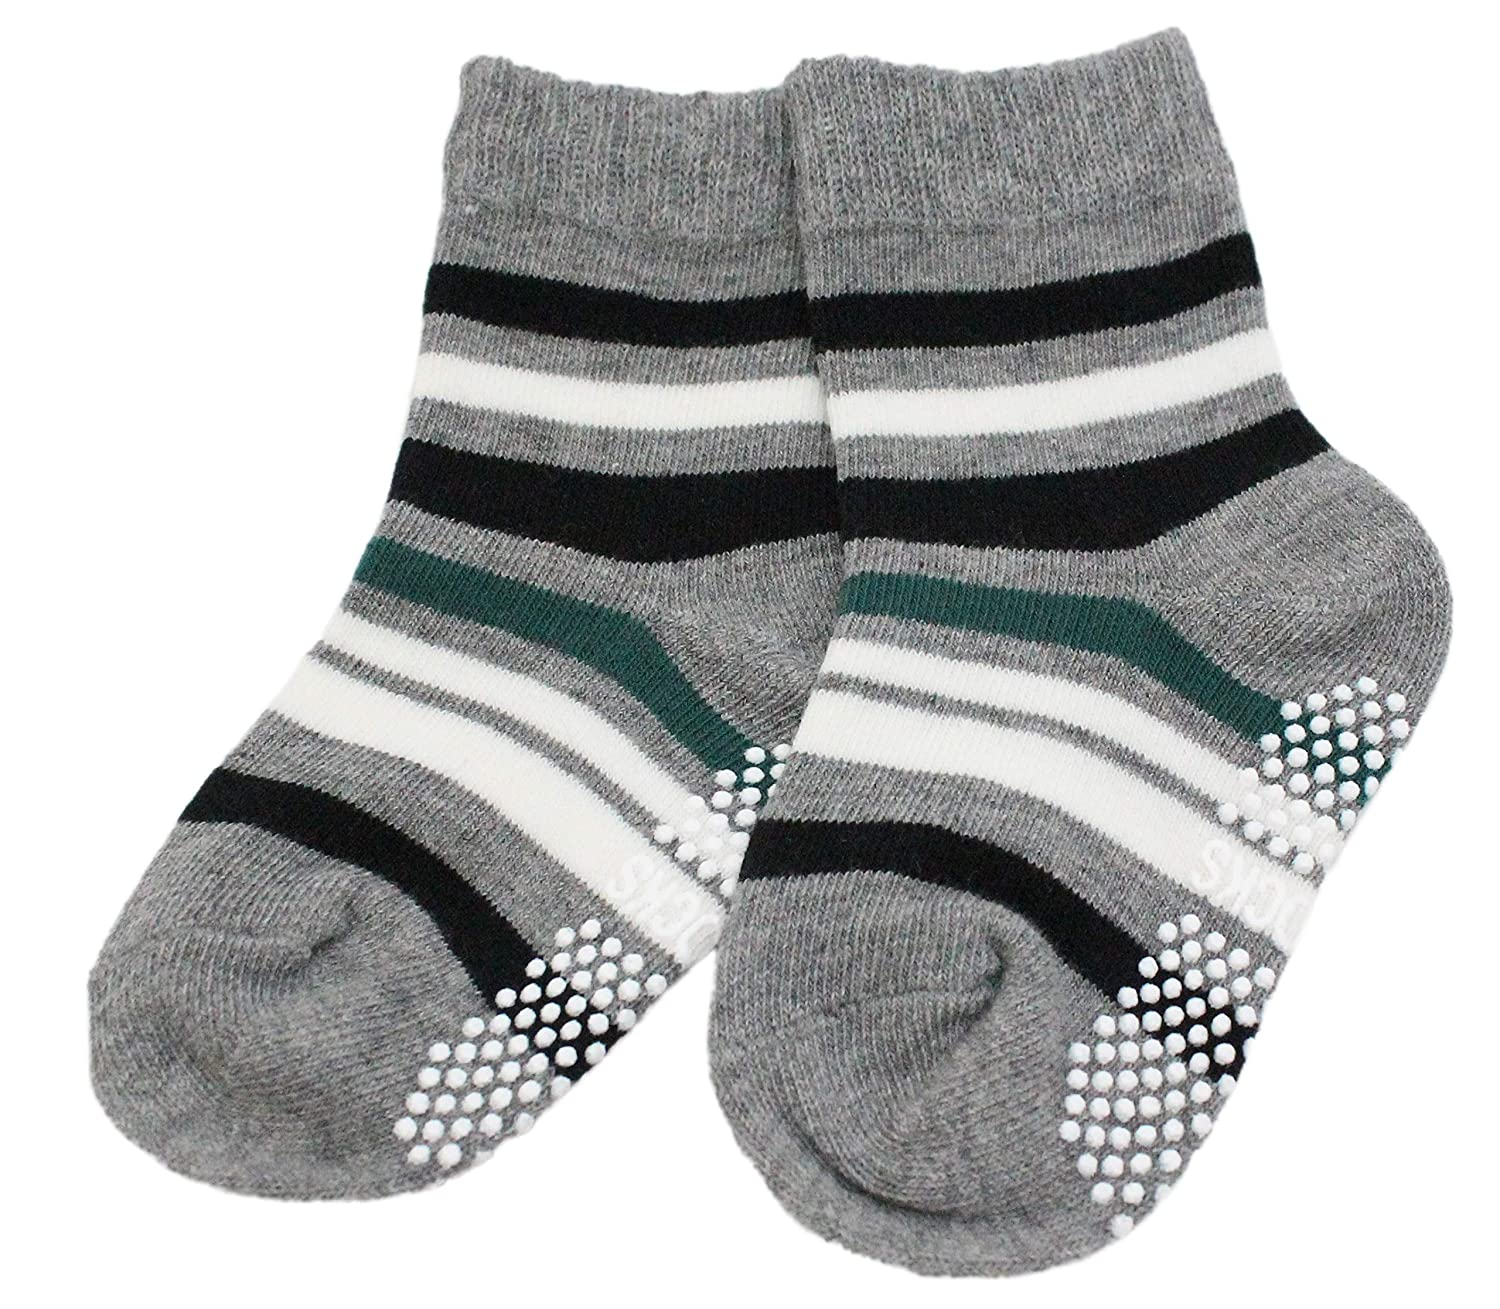 Boys Kids 3 Pairs Cotton Rich Non-slip Colourful Striped Ankle Calf Socks Ankle Socks Non-slip Age 1 to 3